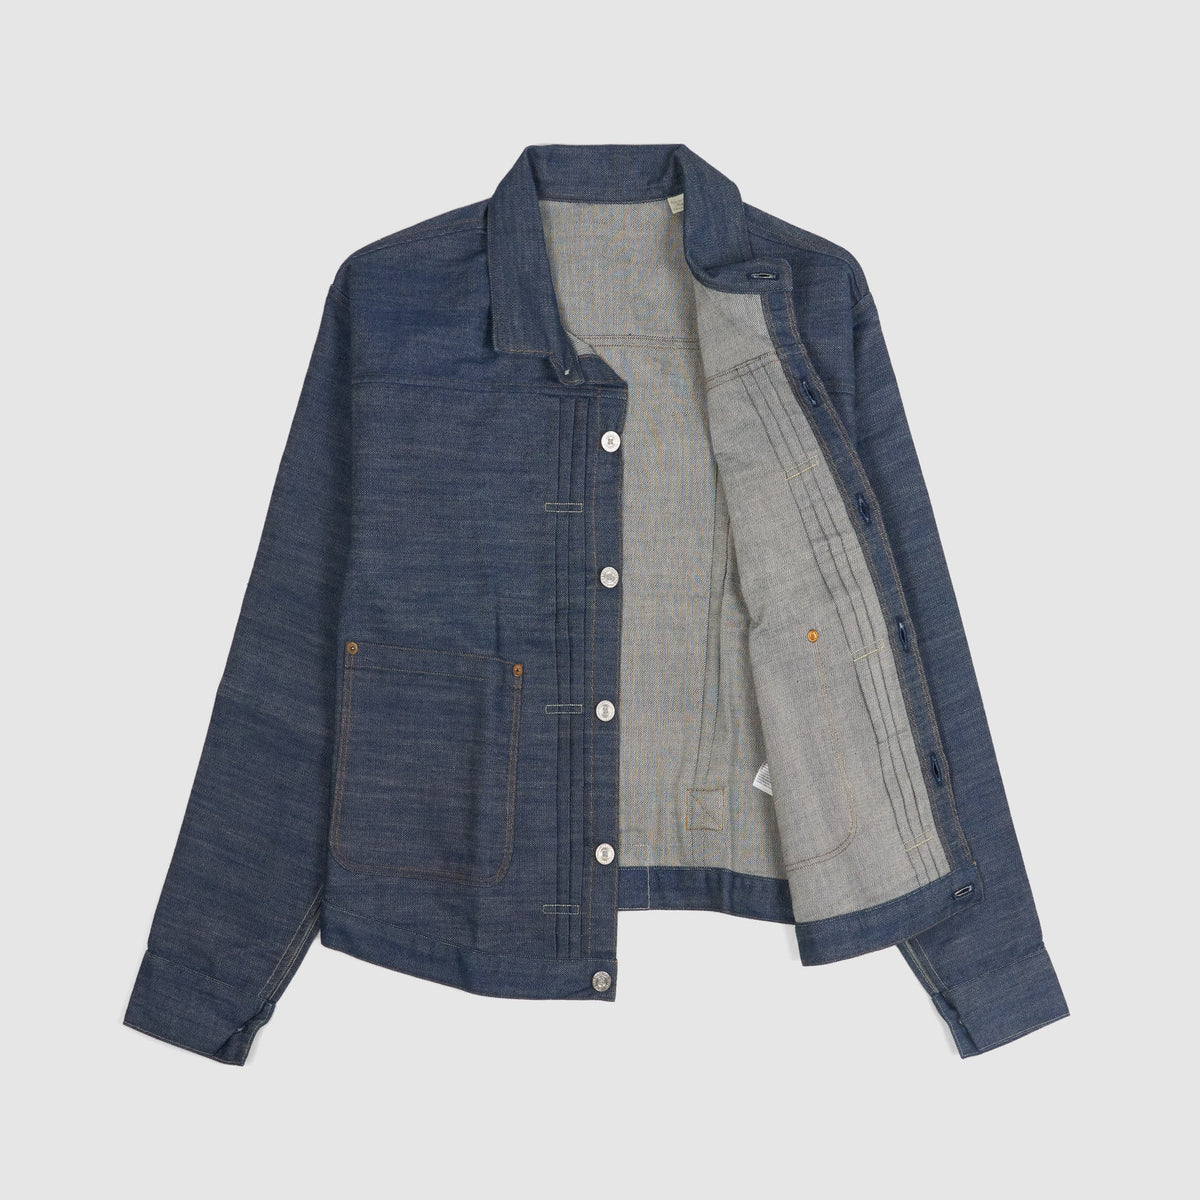 Levi's Vintage Clothing 1880 Triple Pleat Denim Jacket